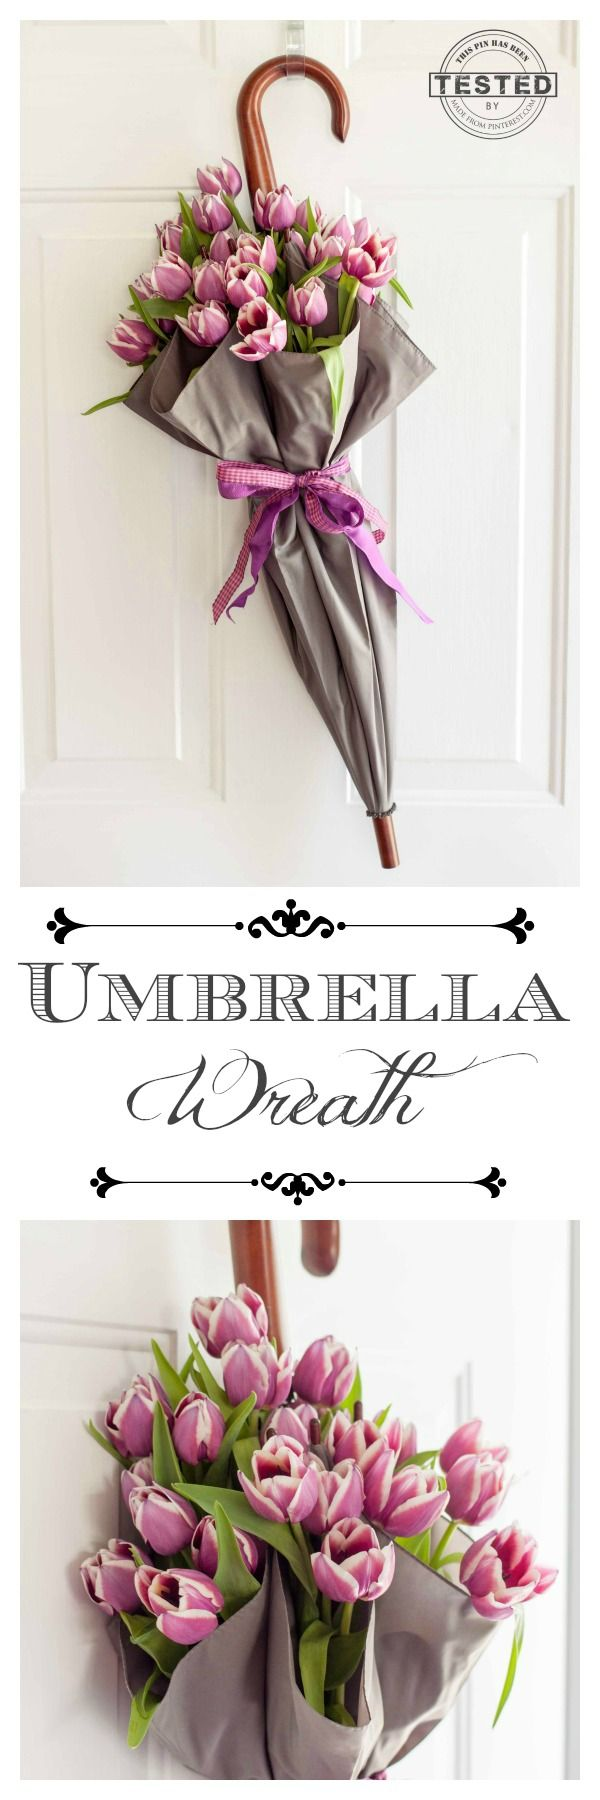 This Umbrella Wreath is easy to make. Great tip if you want to use fresh flowers!